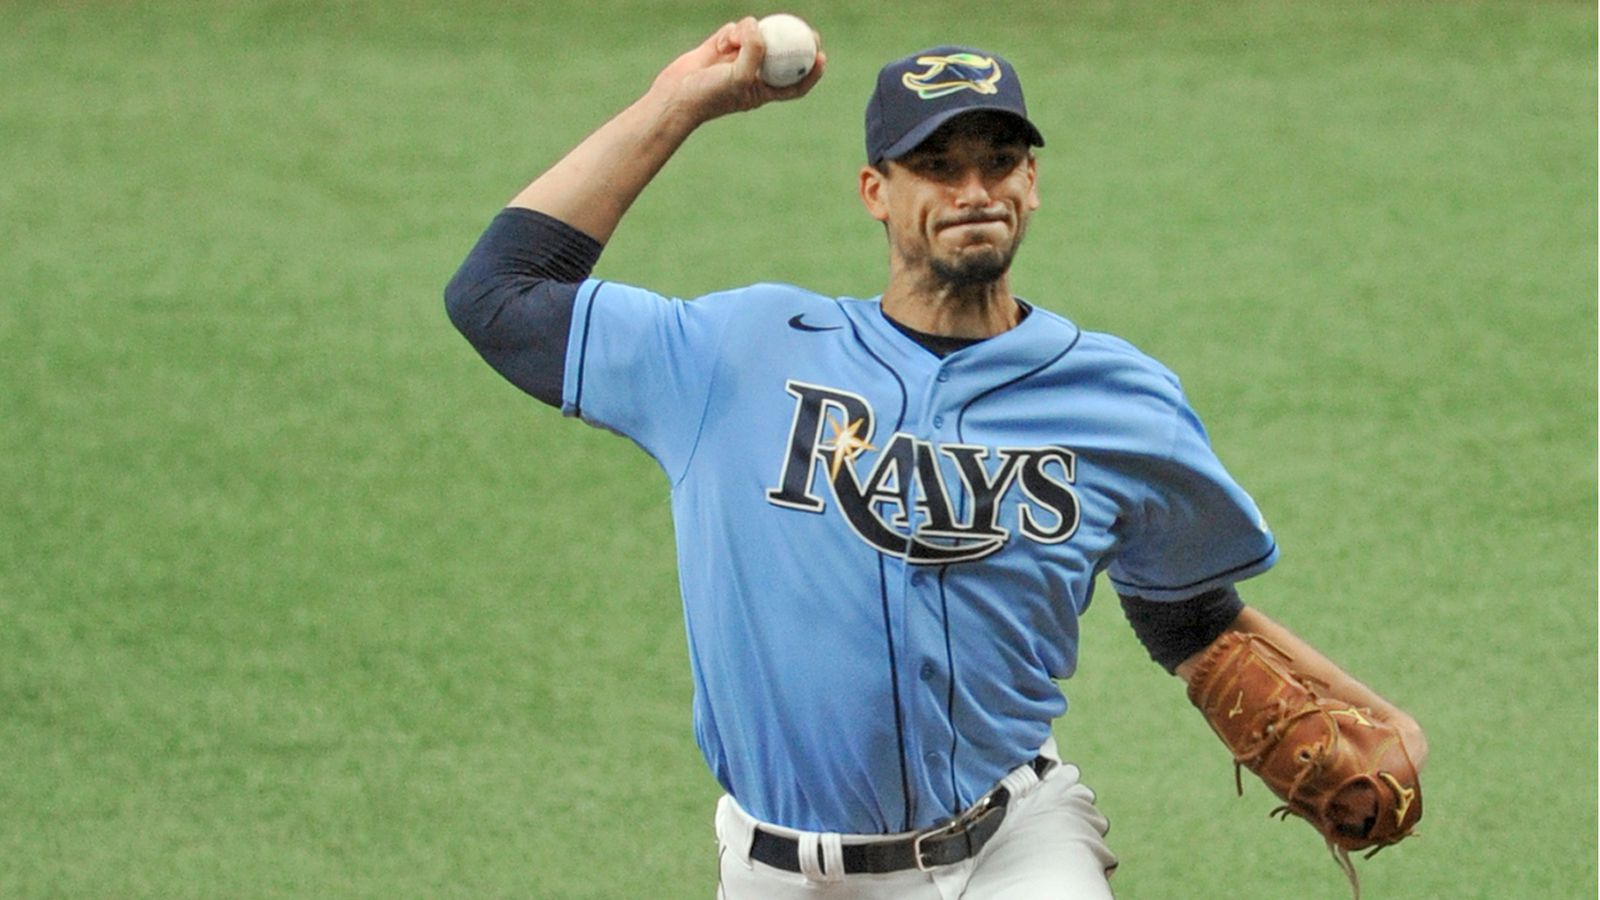 rays charlie morton leaves game with shoulder issue rays charlie morton leaves game with